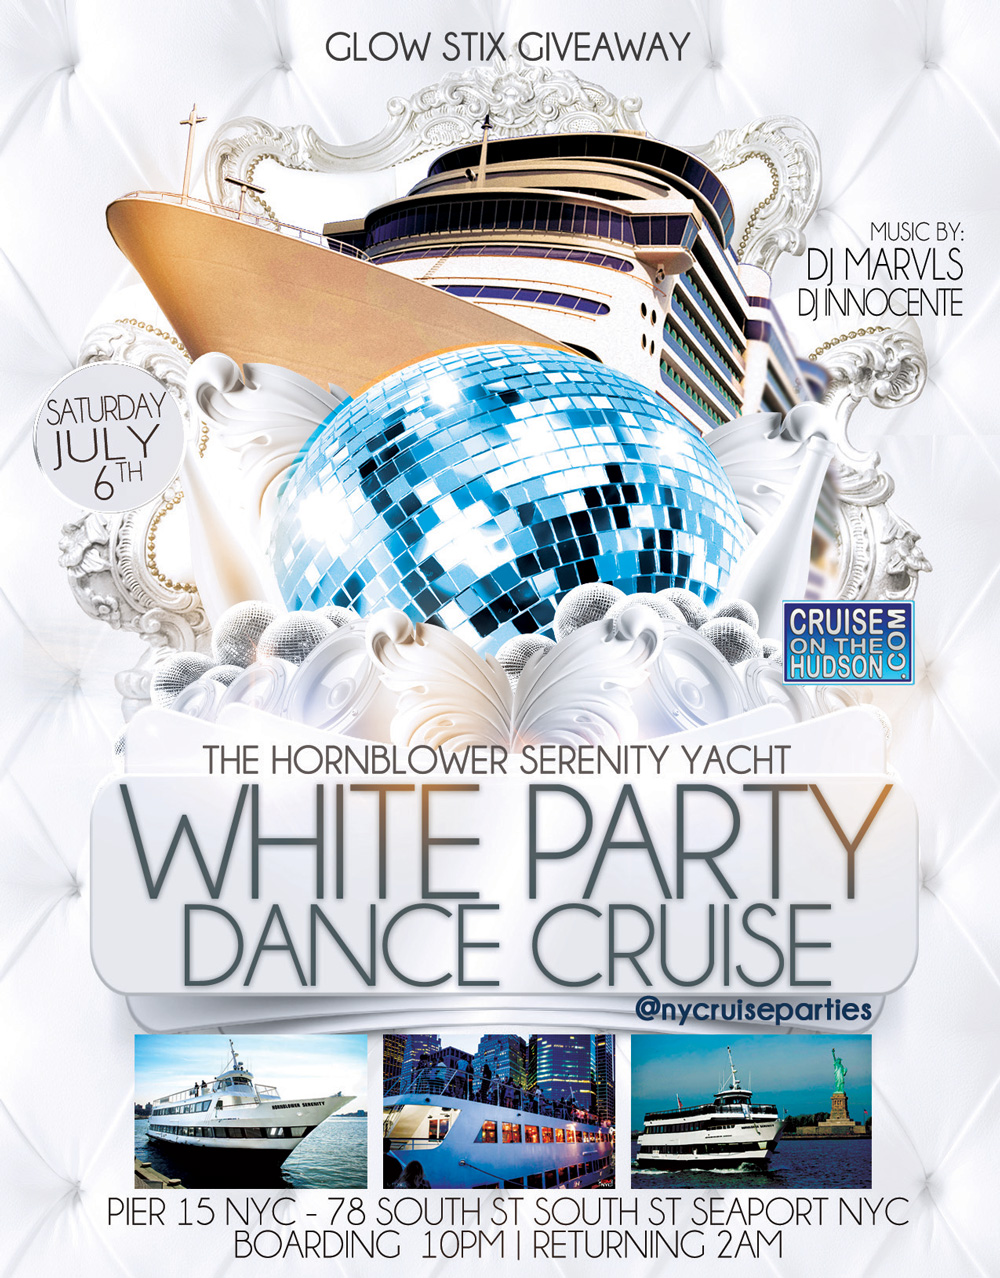 The White Party Dance Cruise NYC Memorial Day Weekend New York